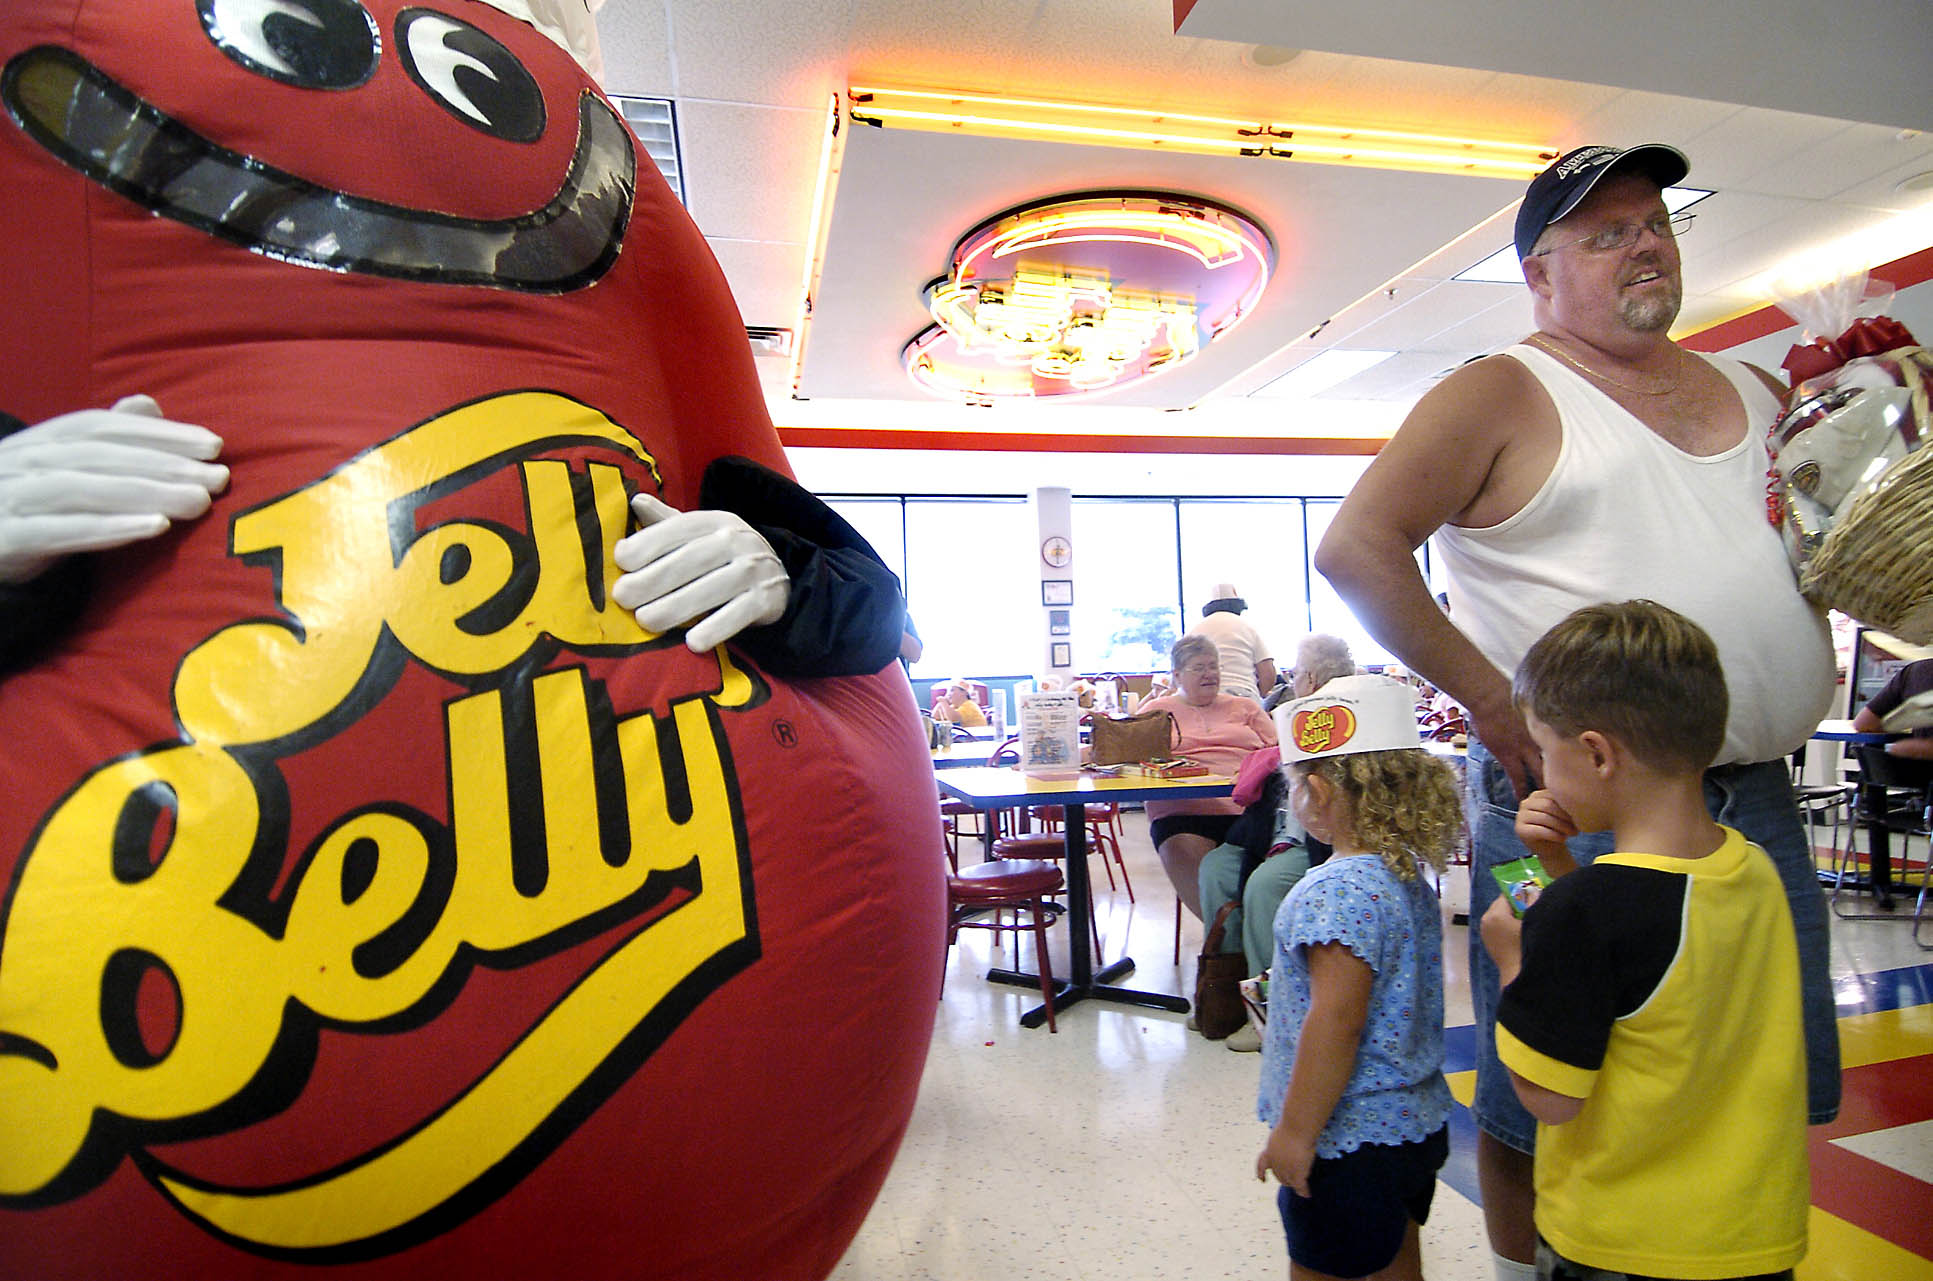 Michael Lively of Hammond, Ind., stands near the Mr. Jelly Belly mascot at the Jelly Belly Center in Pleasant Prairie, Wis on July 26, 2006.